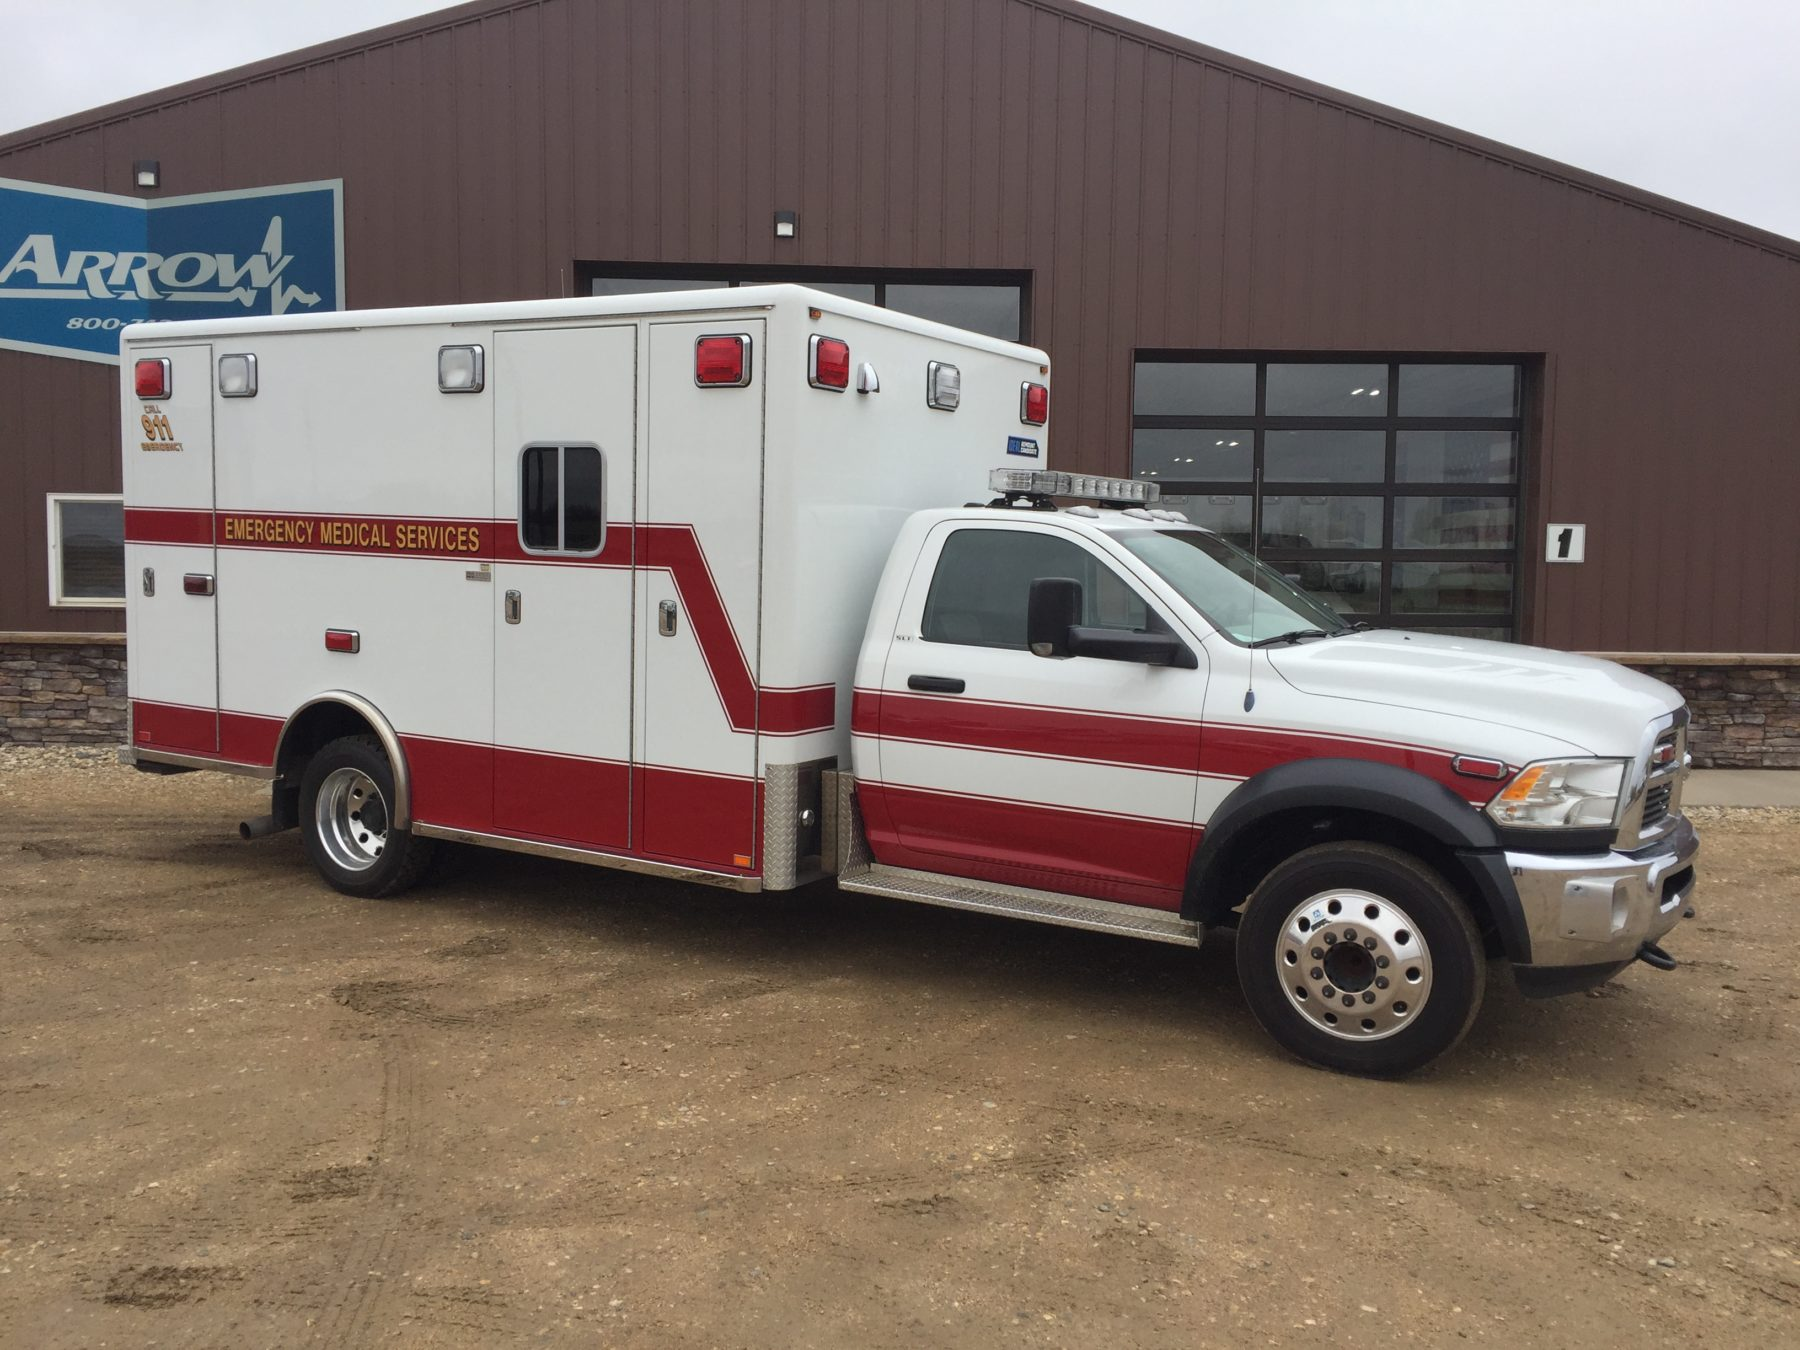 2012 Dodge 4500 Heavy Duty Ambulance For Sale – Picture 3